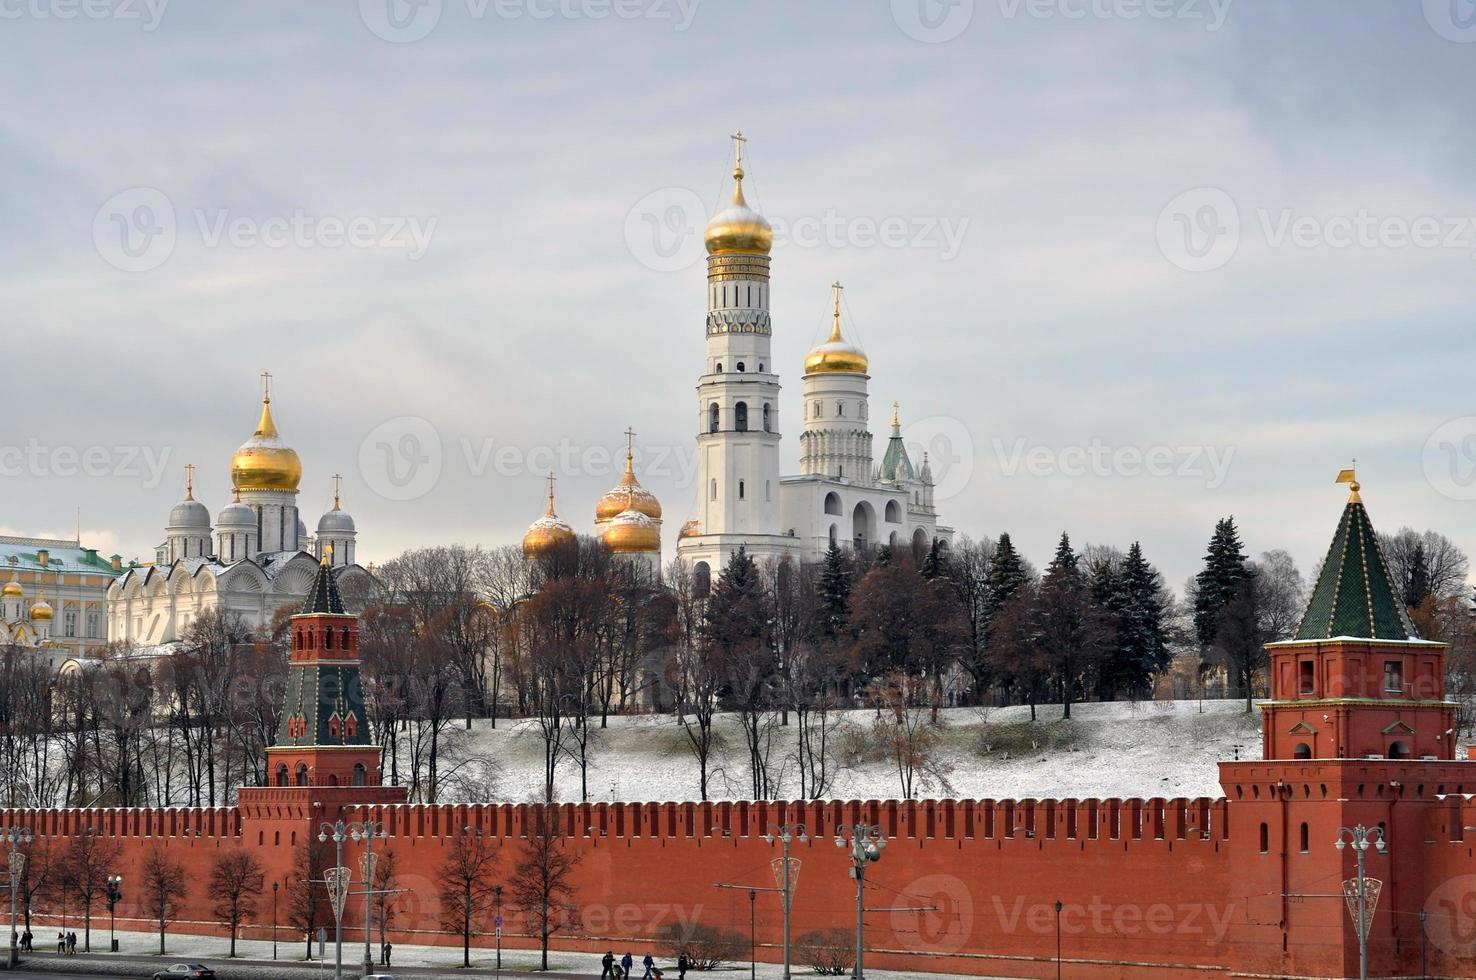 The Moscow Kremlin after snowfall during a cold day photo